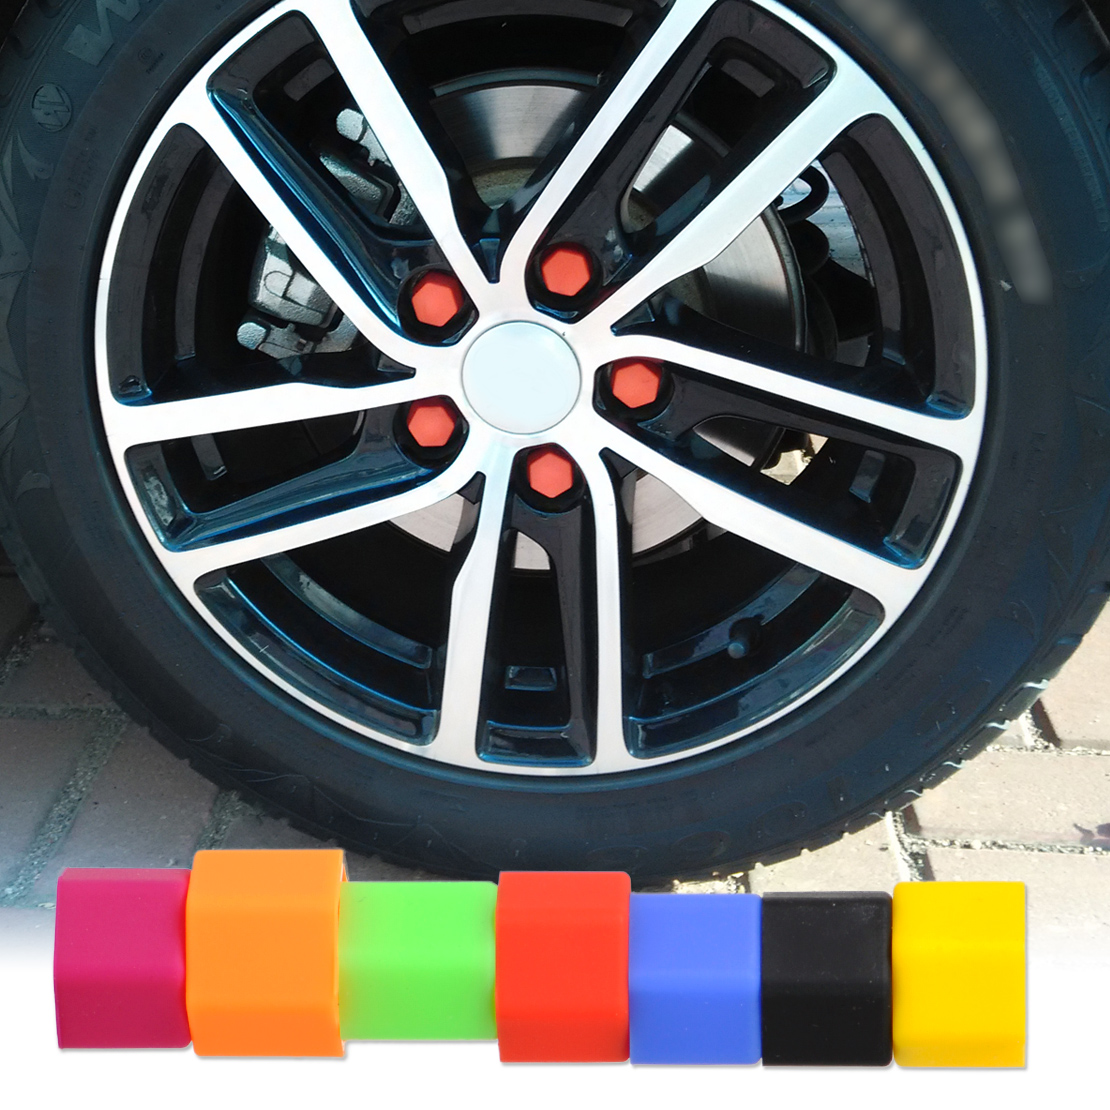 beler 20Pcs Universal Silicone Car Wheel Lug Nut Bolt Cover Protective Tyre Valve Screw Cap Antirust 17MM for VW Ford BMW Toyota